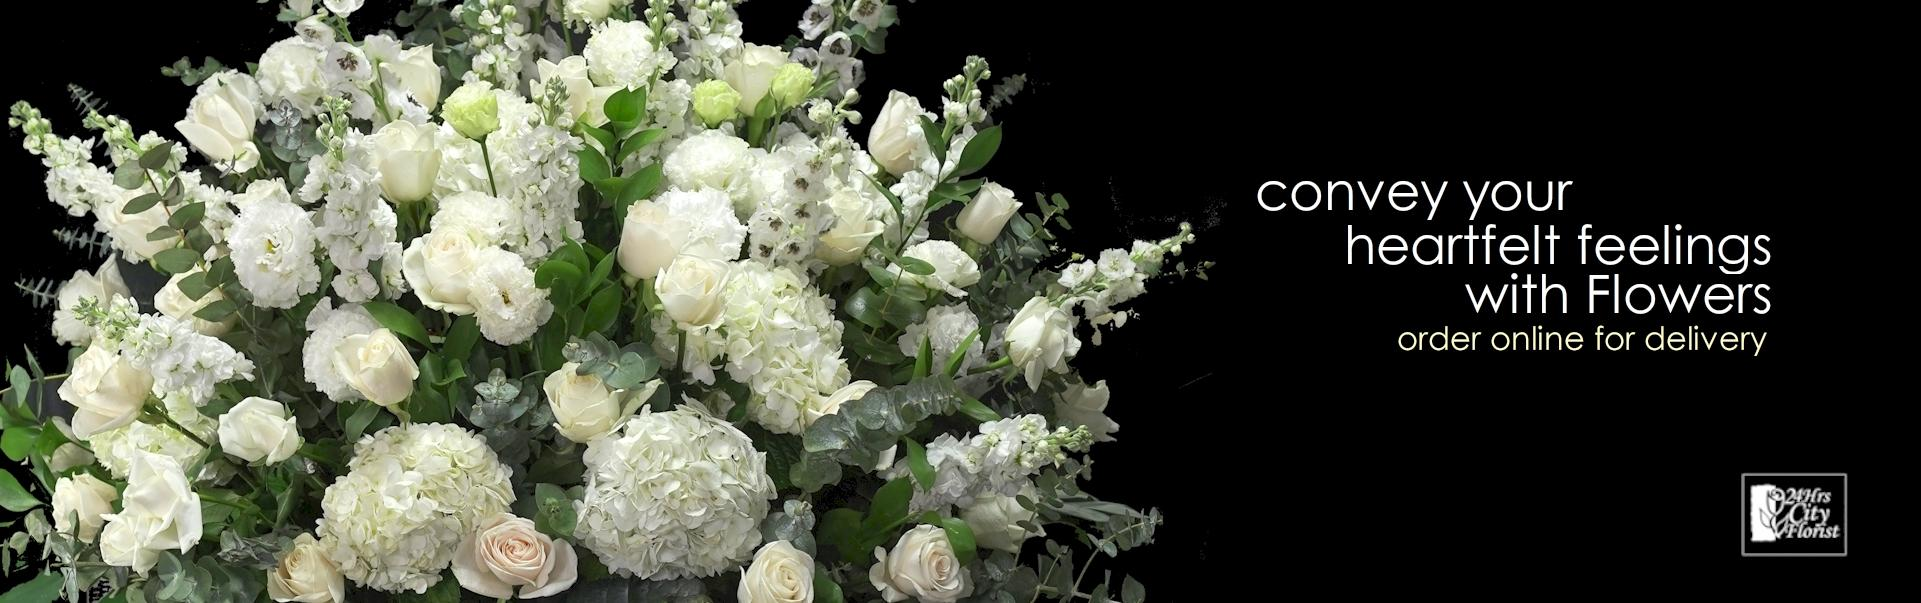 Condolences Flowers Delivery